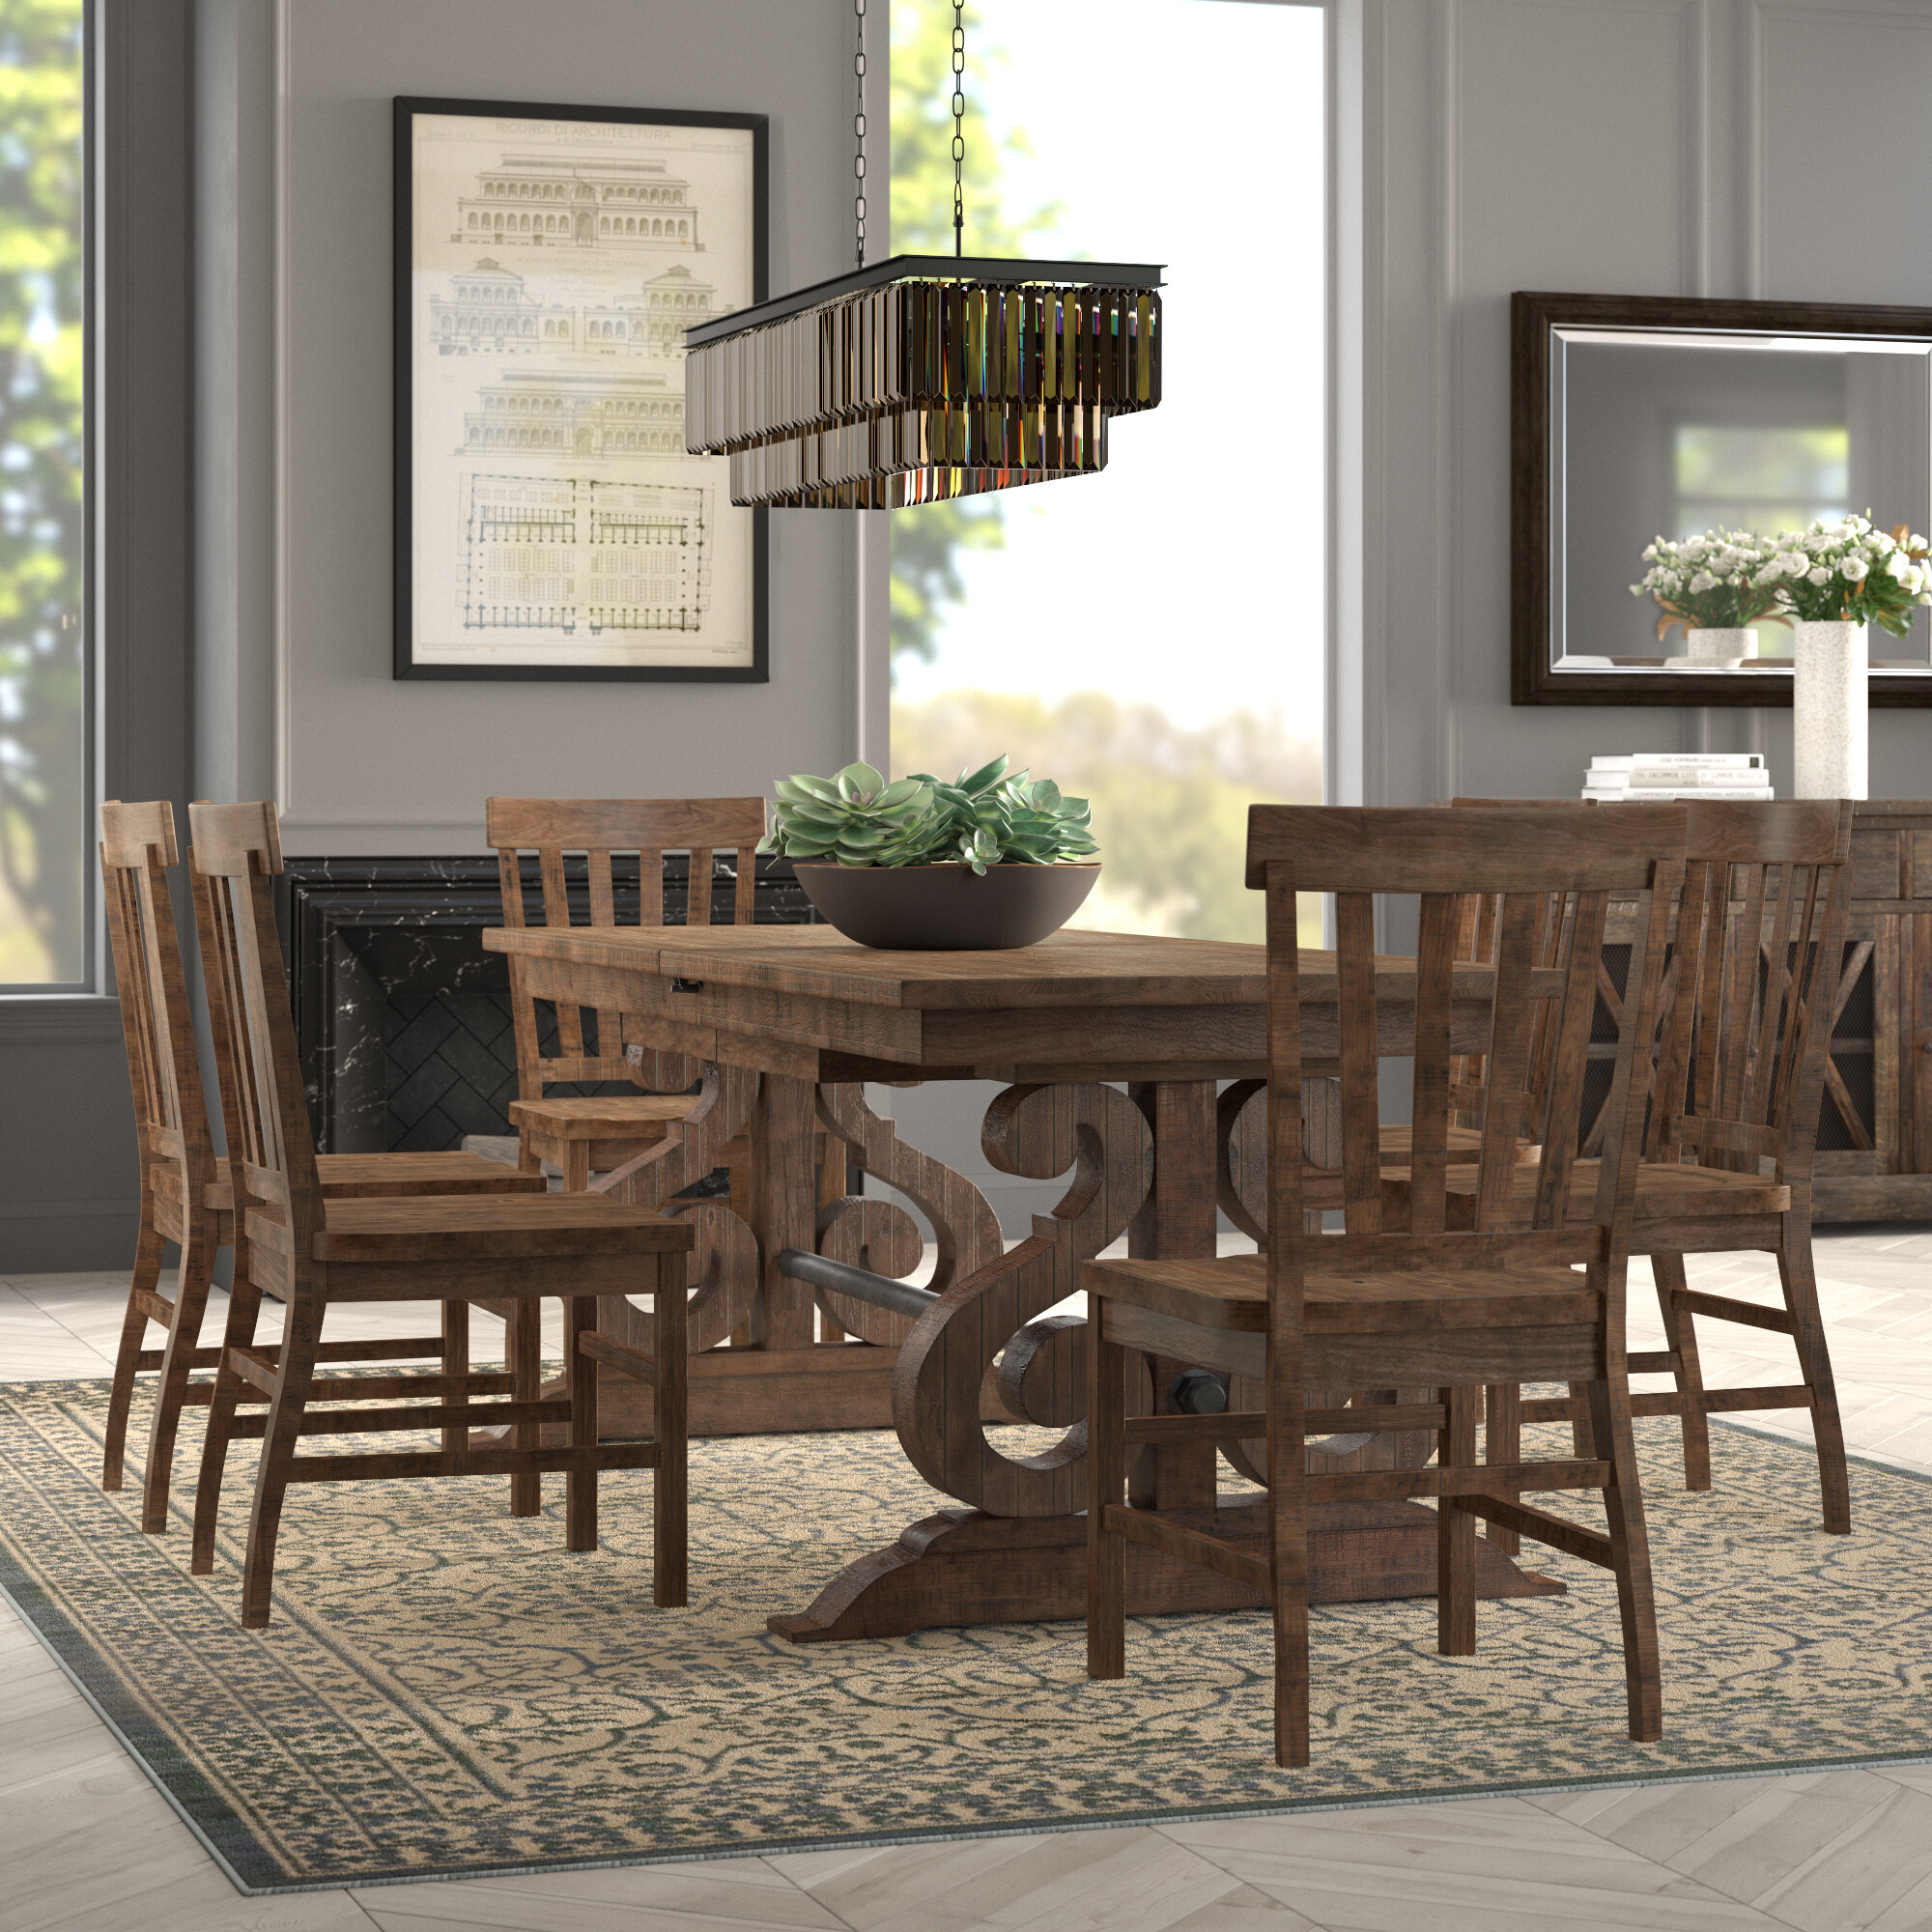 7 Piece Dining Set Within Current Queener 5 Piece Dining Sets (Photo 7 of 20)